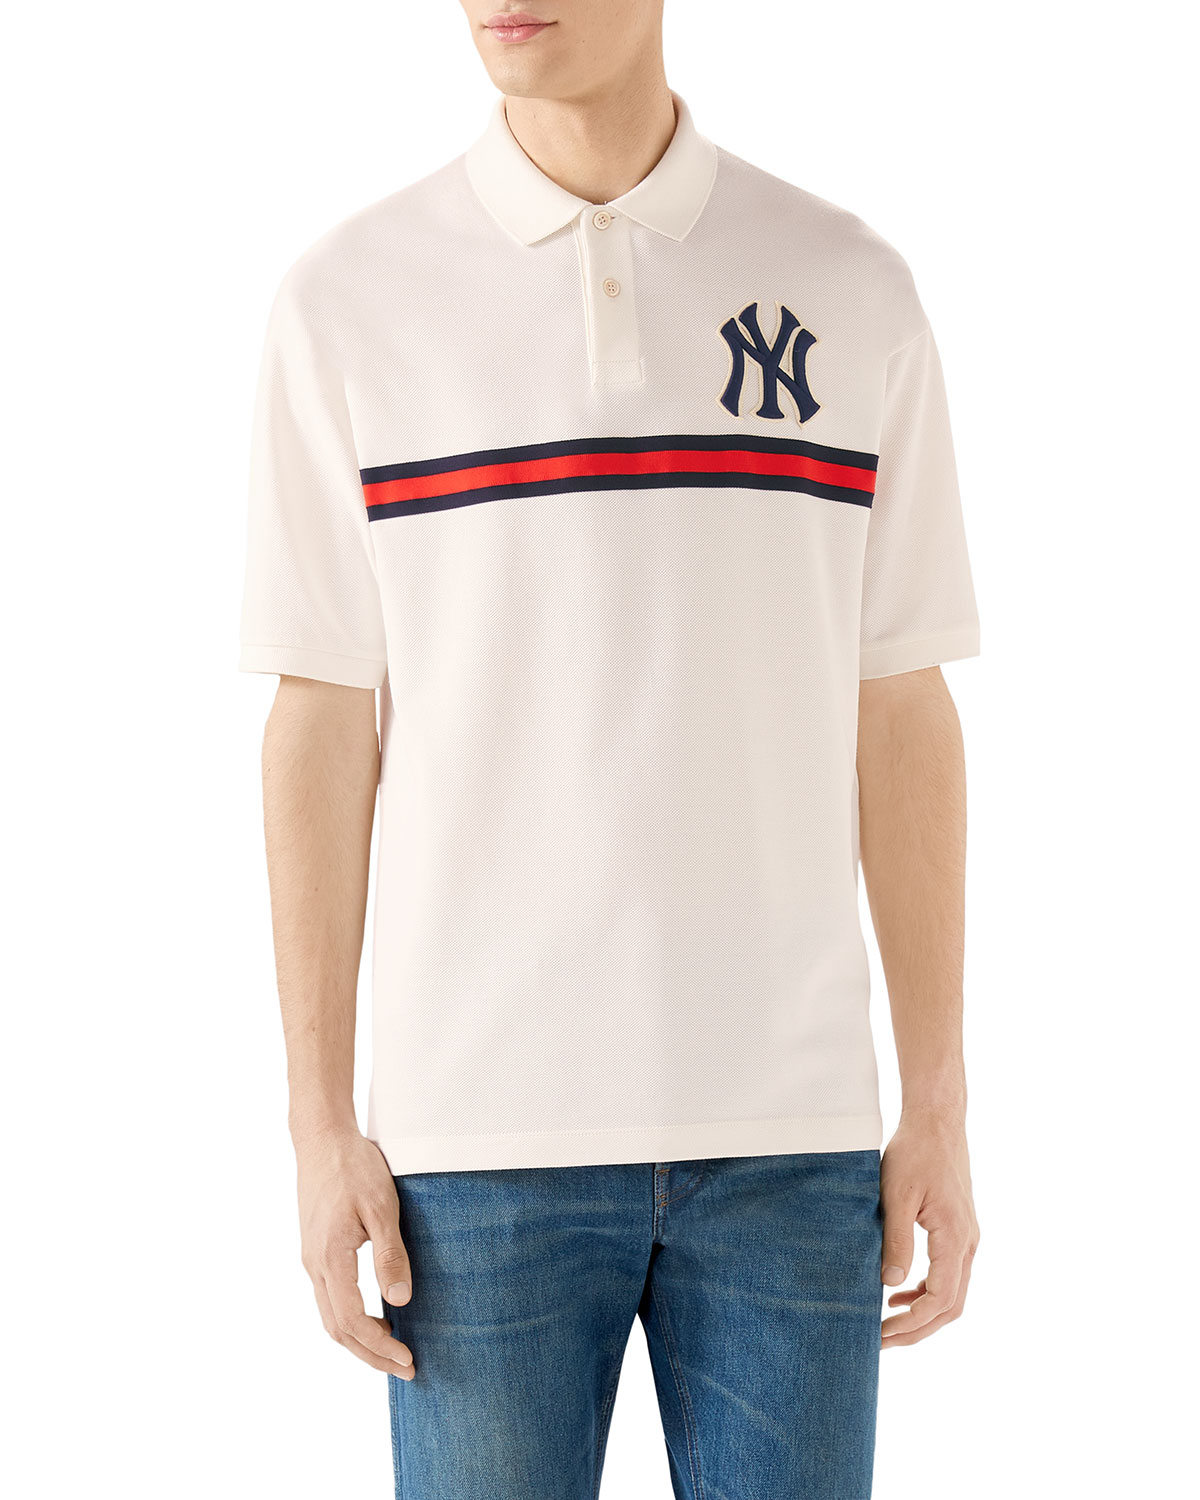 37e2f34c4b66 Gucci Men's NY Yankees MLB Polo Shirt with Logo Applique | Neiman Marcus